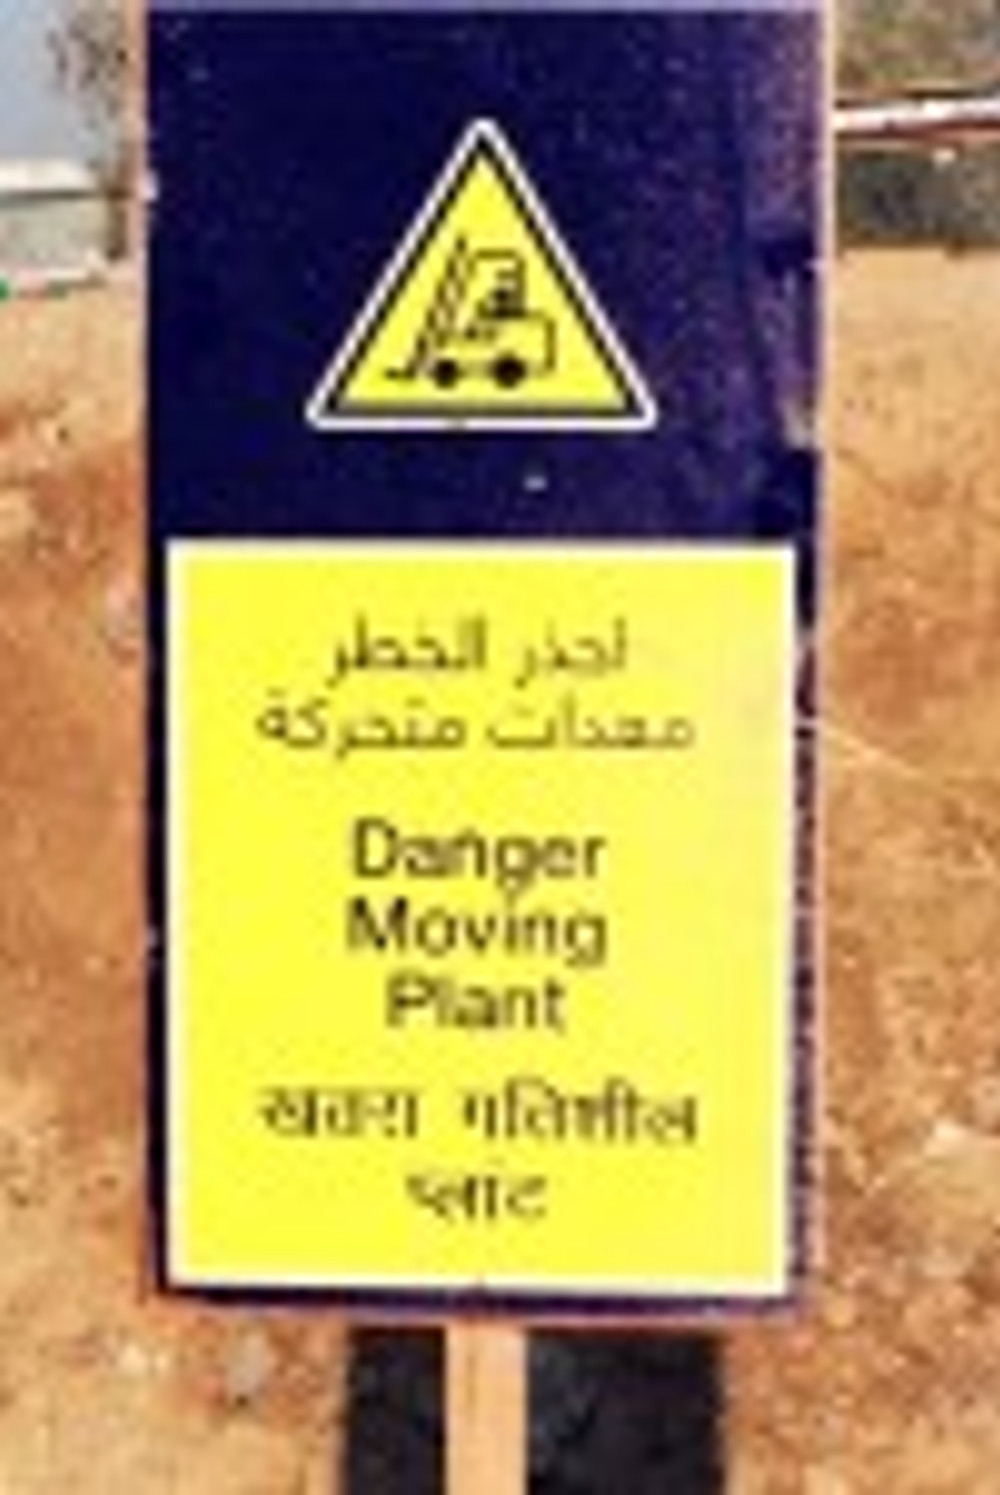 Watch out! A plant is moving nearby!